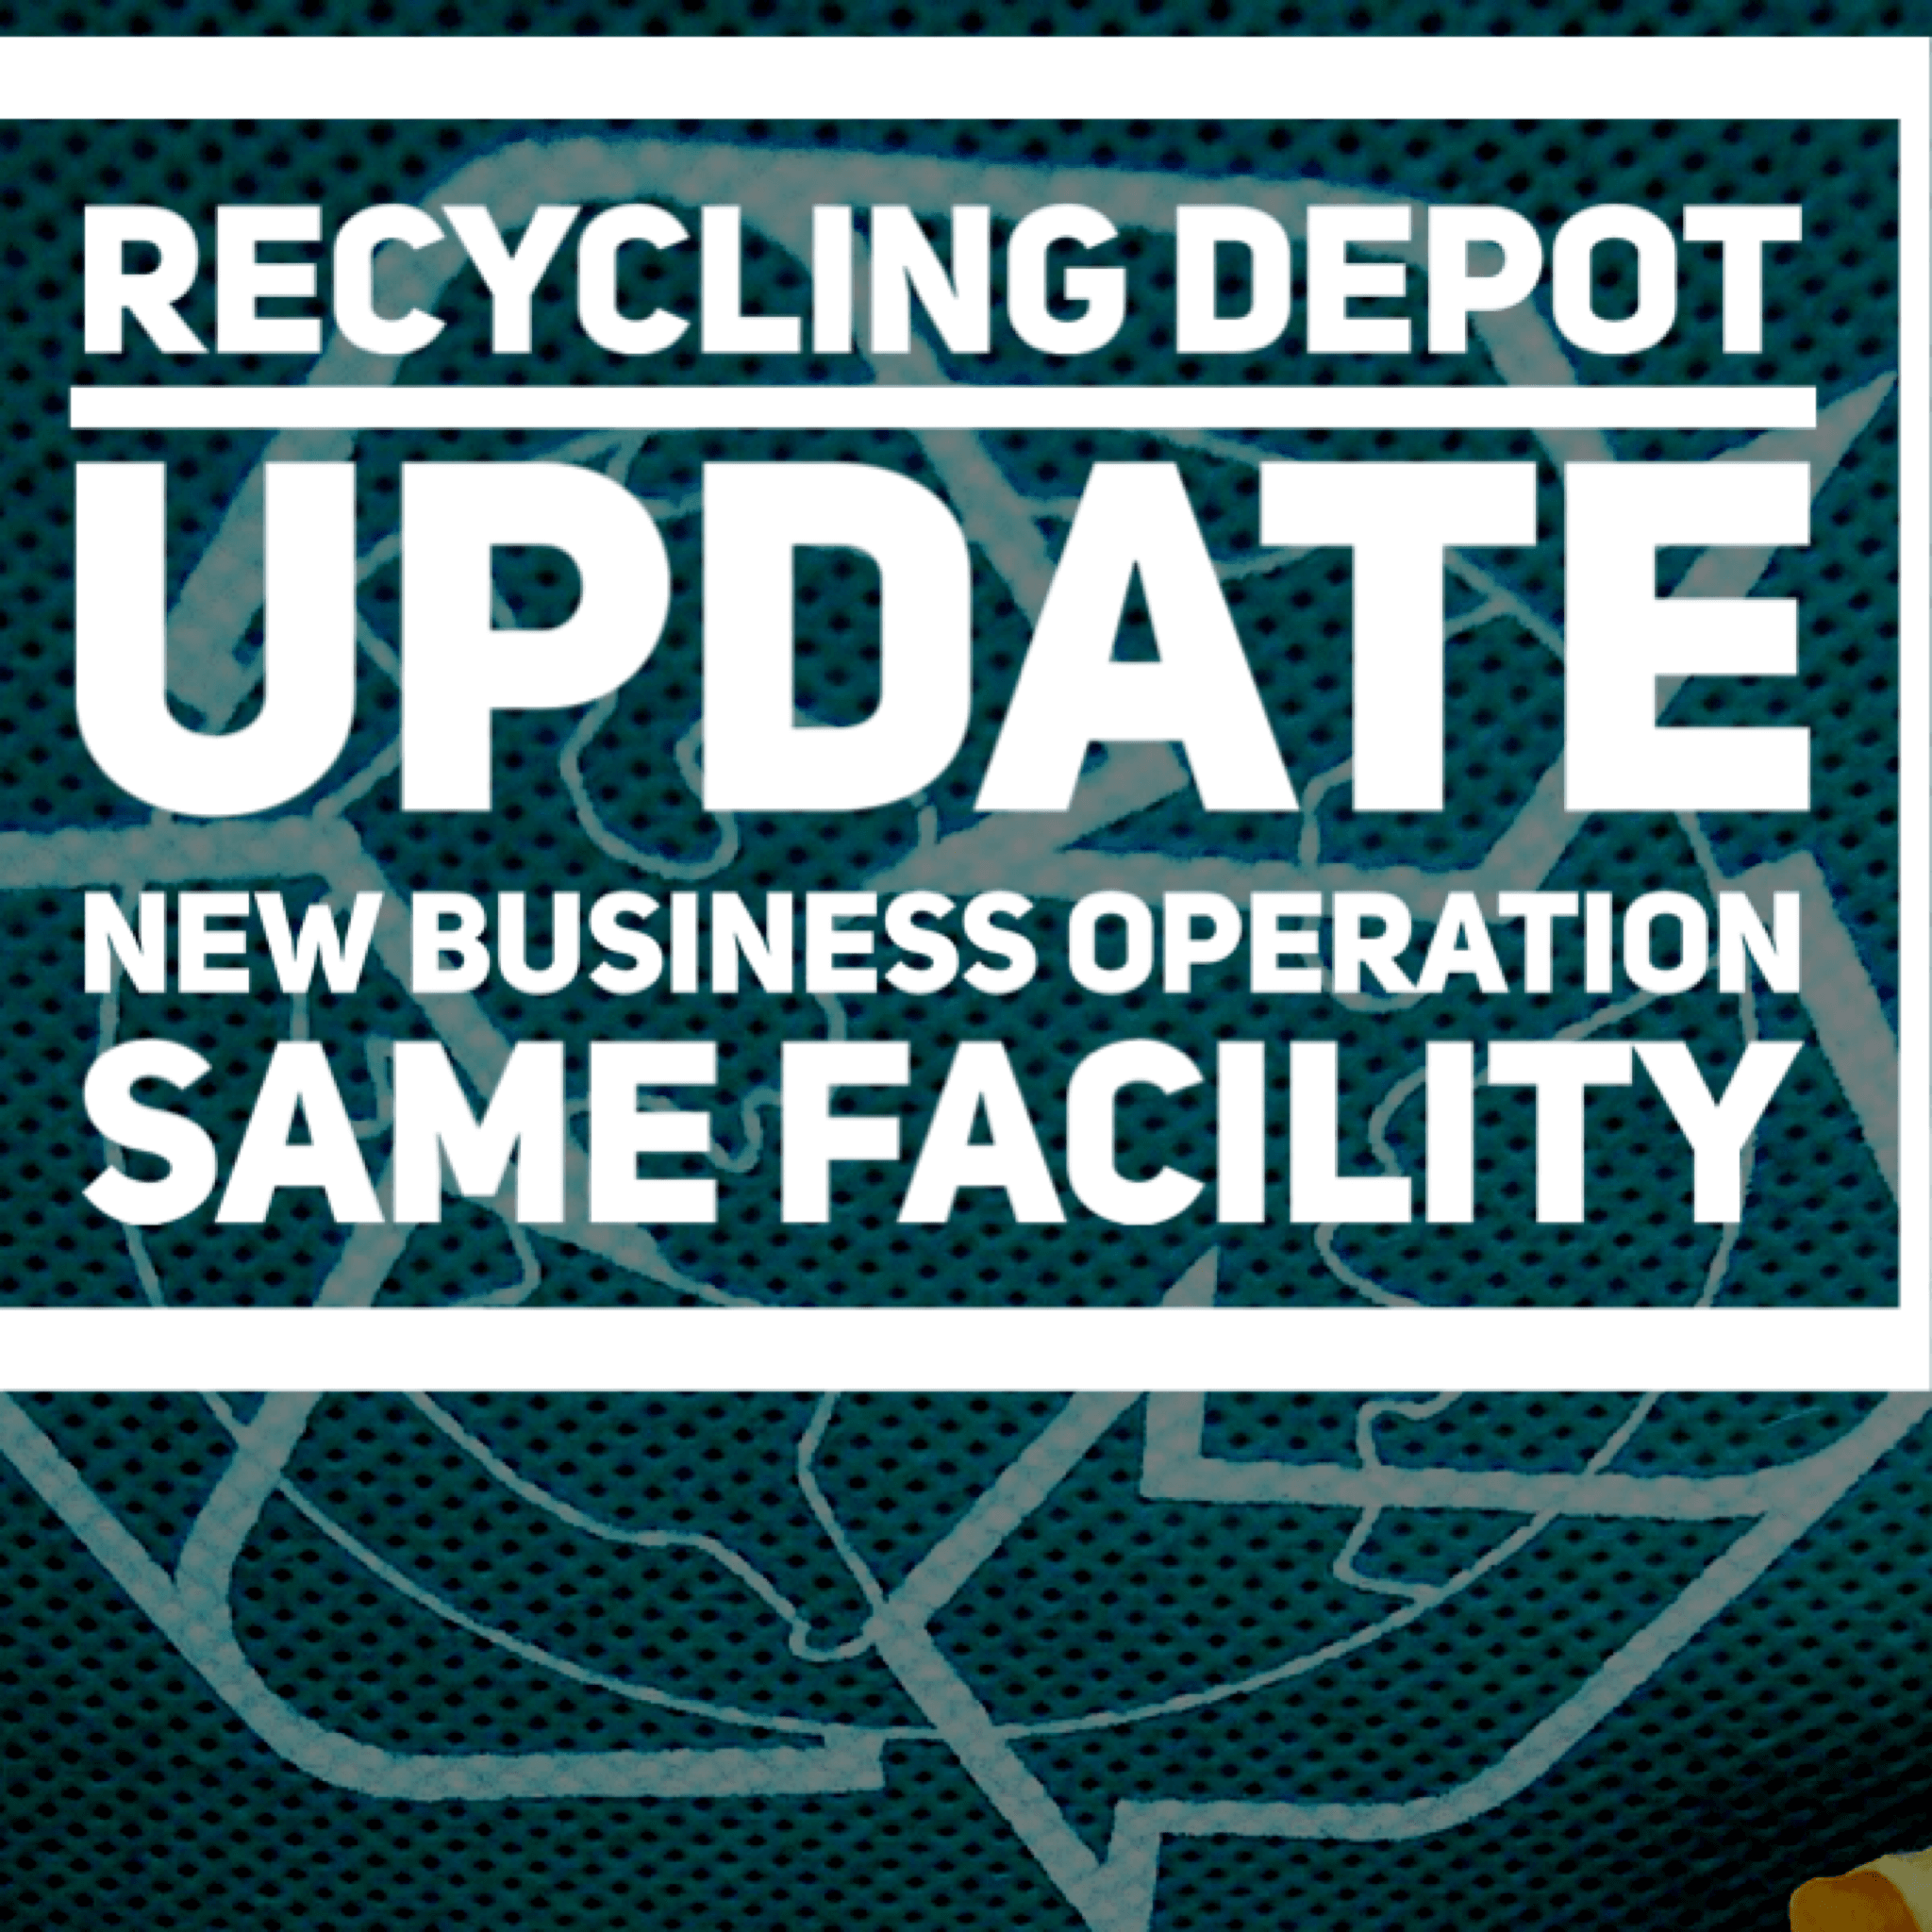 new mgmt recycling depot